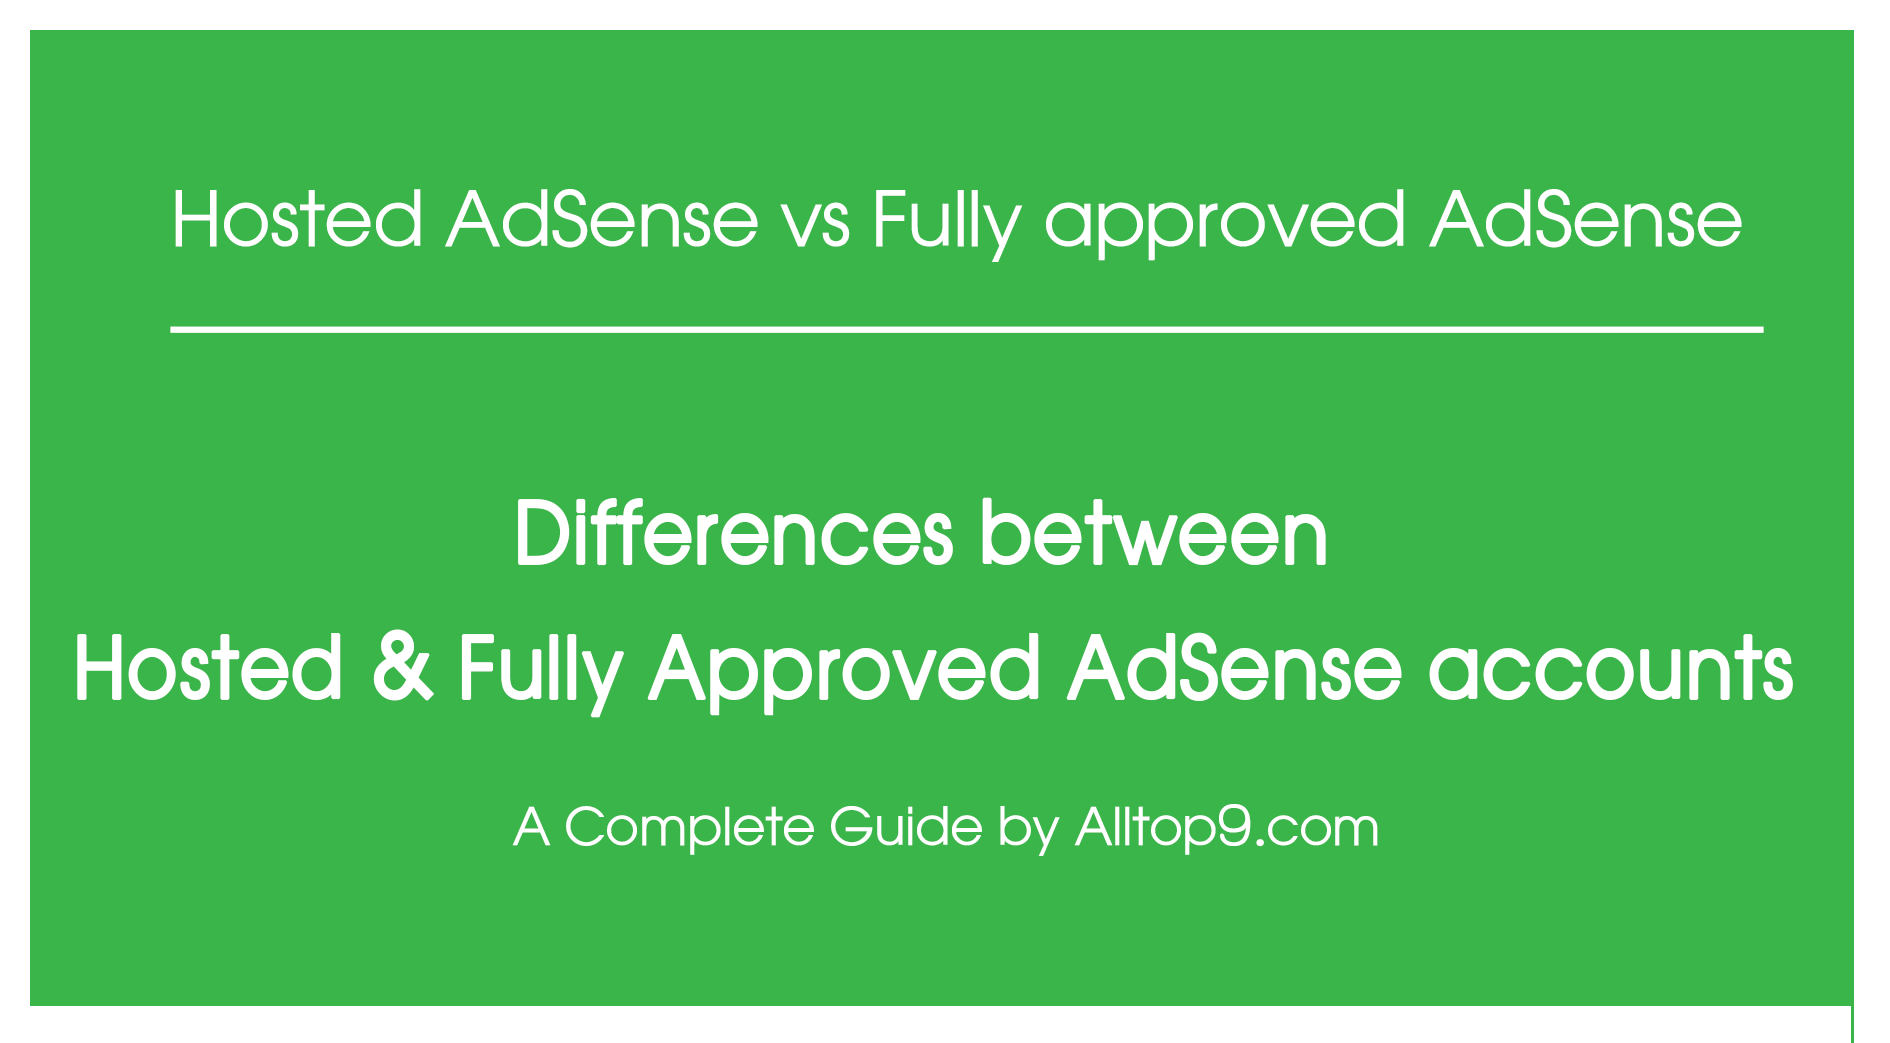 differences-between-hosted-non-hosted-fully-approved-adsense-account